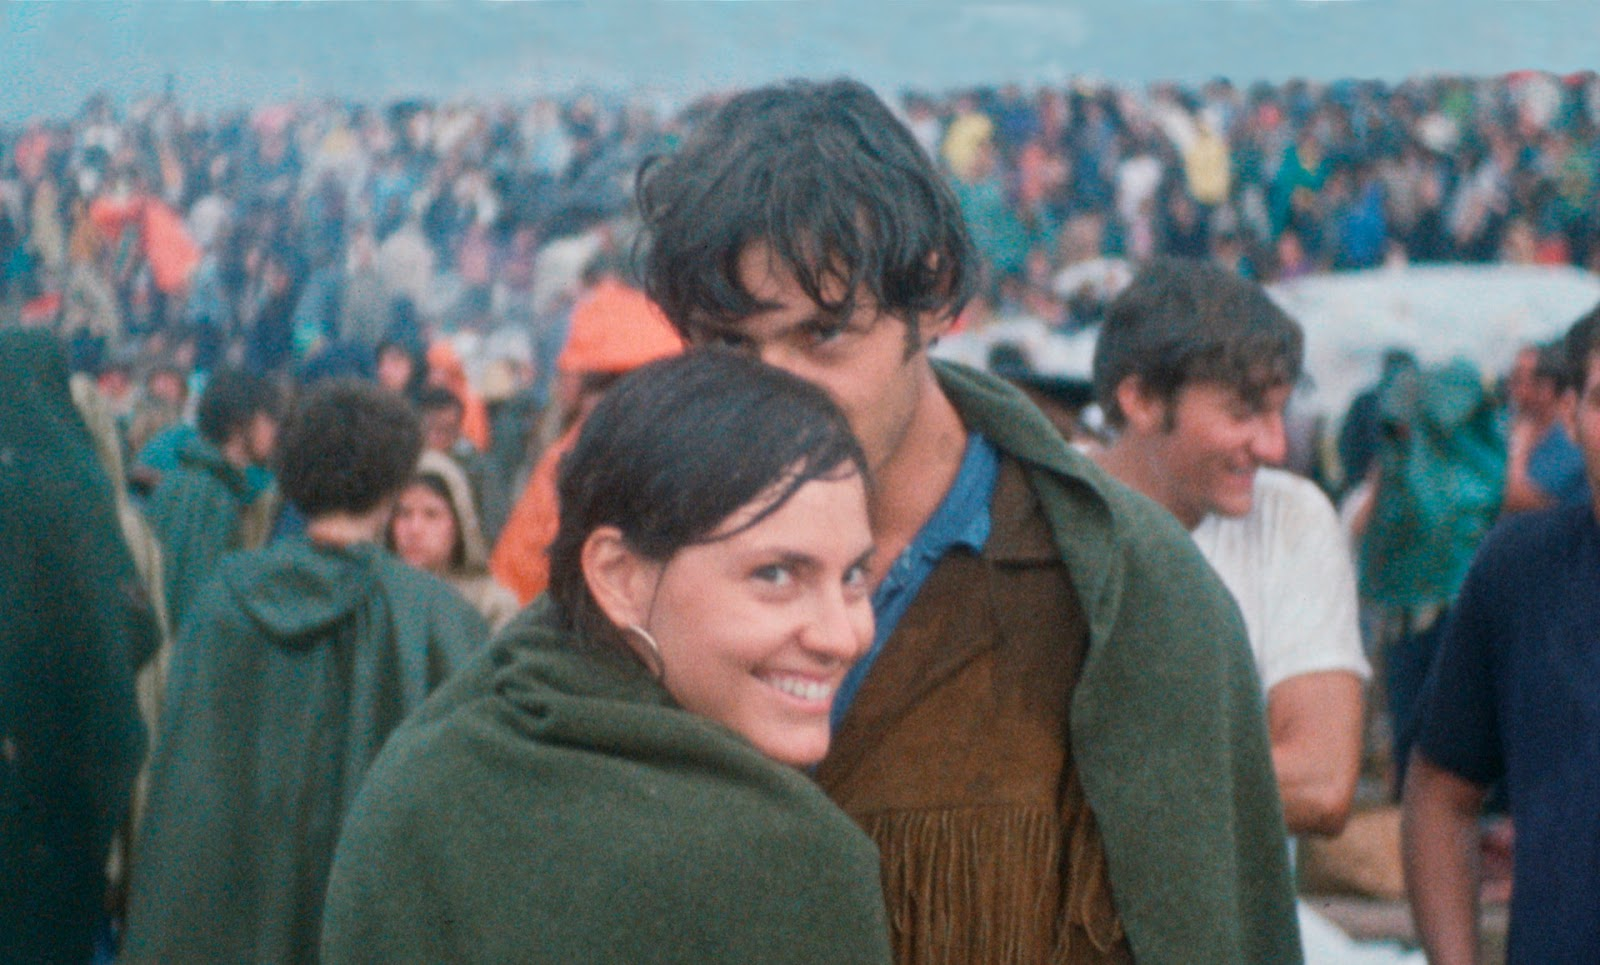 Couple Recovers Woodstock Photo 50 Years After It Was Taken To Mark The Beginning Of Their Relationship 1